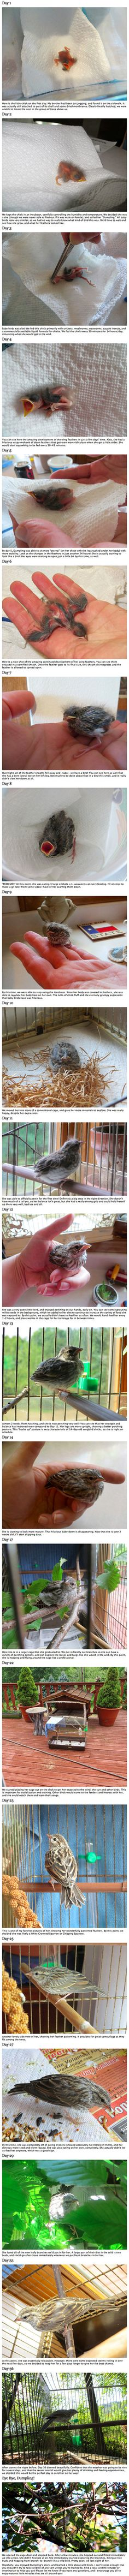 A veterinarian was jogging one day when he stumbled upon this tiny freshly hatched songbird that had fallen out of its nest. Unable to locate the nest so he could return the baby bird to it, he decided to take it home and hand raise it himself. Here is the amazingly beautiful story... Have a Little Faith in Me MULTI-TALENTED FARHAN AKHTAR HD IMAGE GALLERY PHOTO GALLERY  | PBS.TWIMG.COM  #EDUCRATSWEB 2020-05-11 pbs.twimg.com https://pbs.twimg.com/media/DTE3cHCUQAAC9UP.jpg